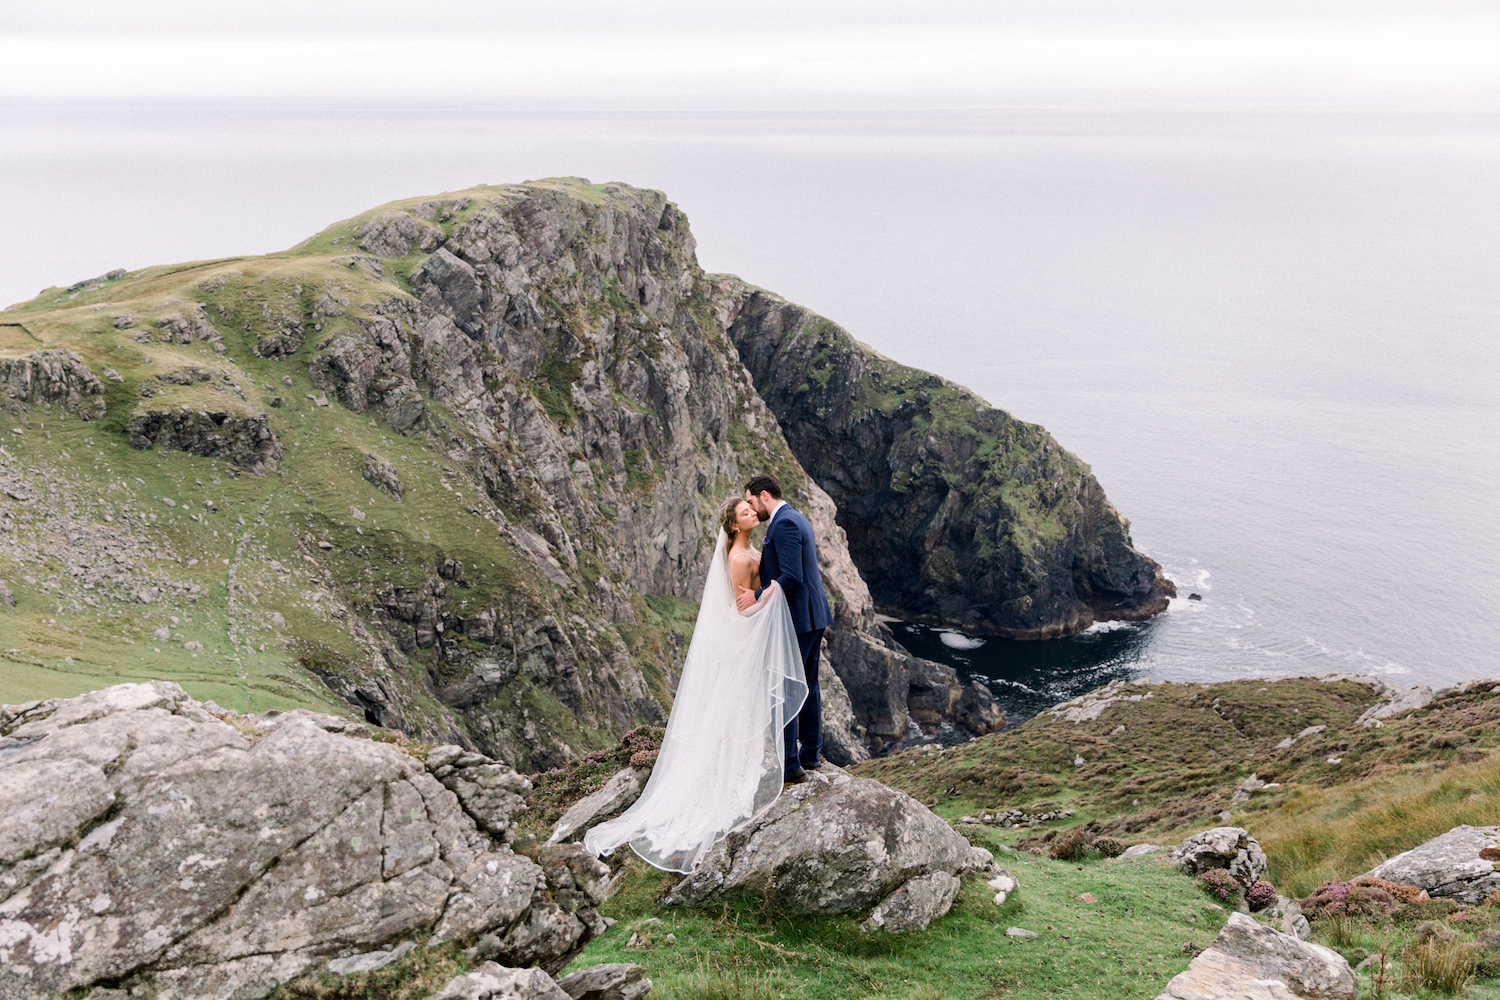 10-reasons-to-have-a-destination-wedding-in-ireland